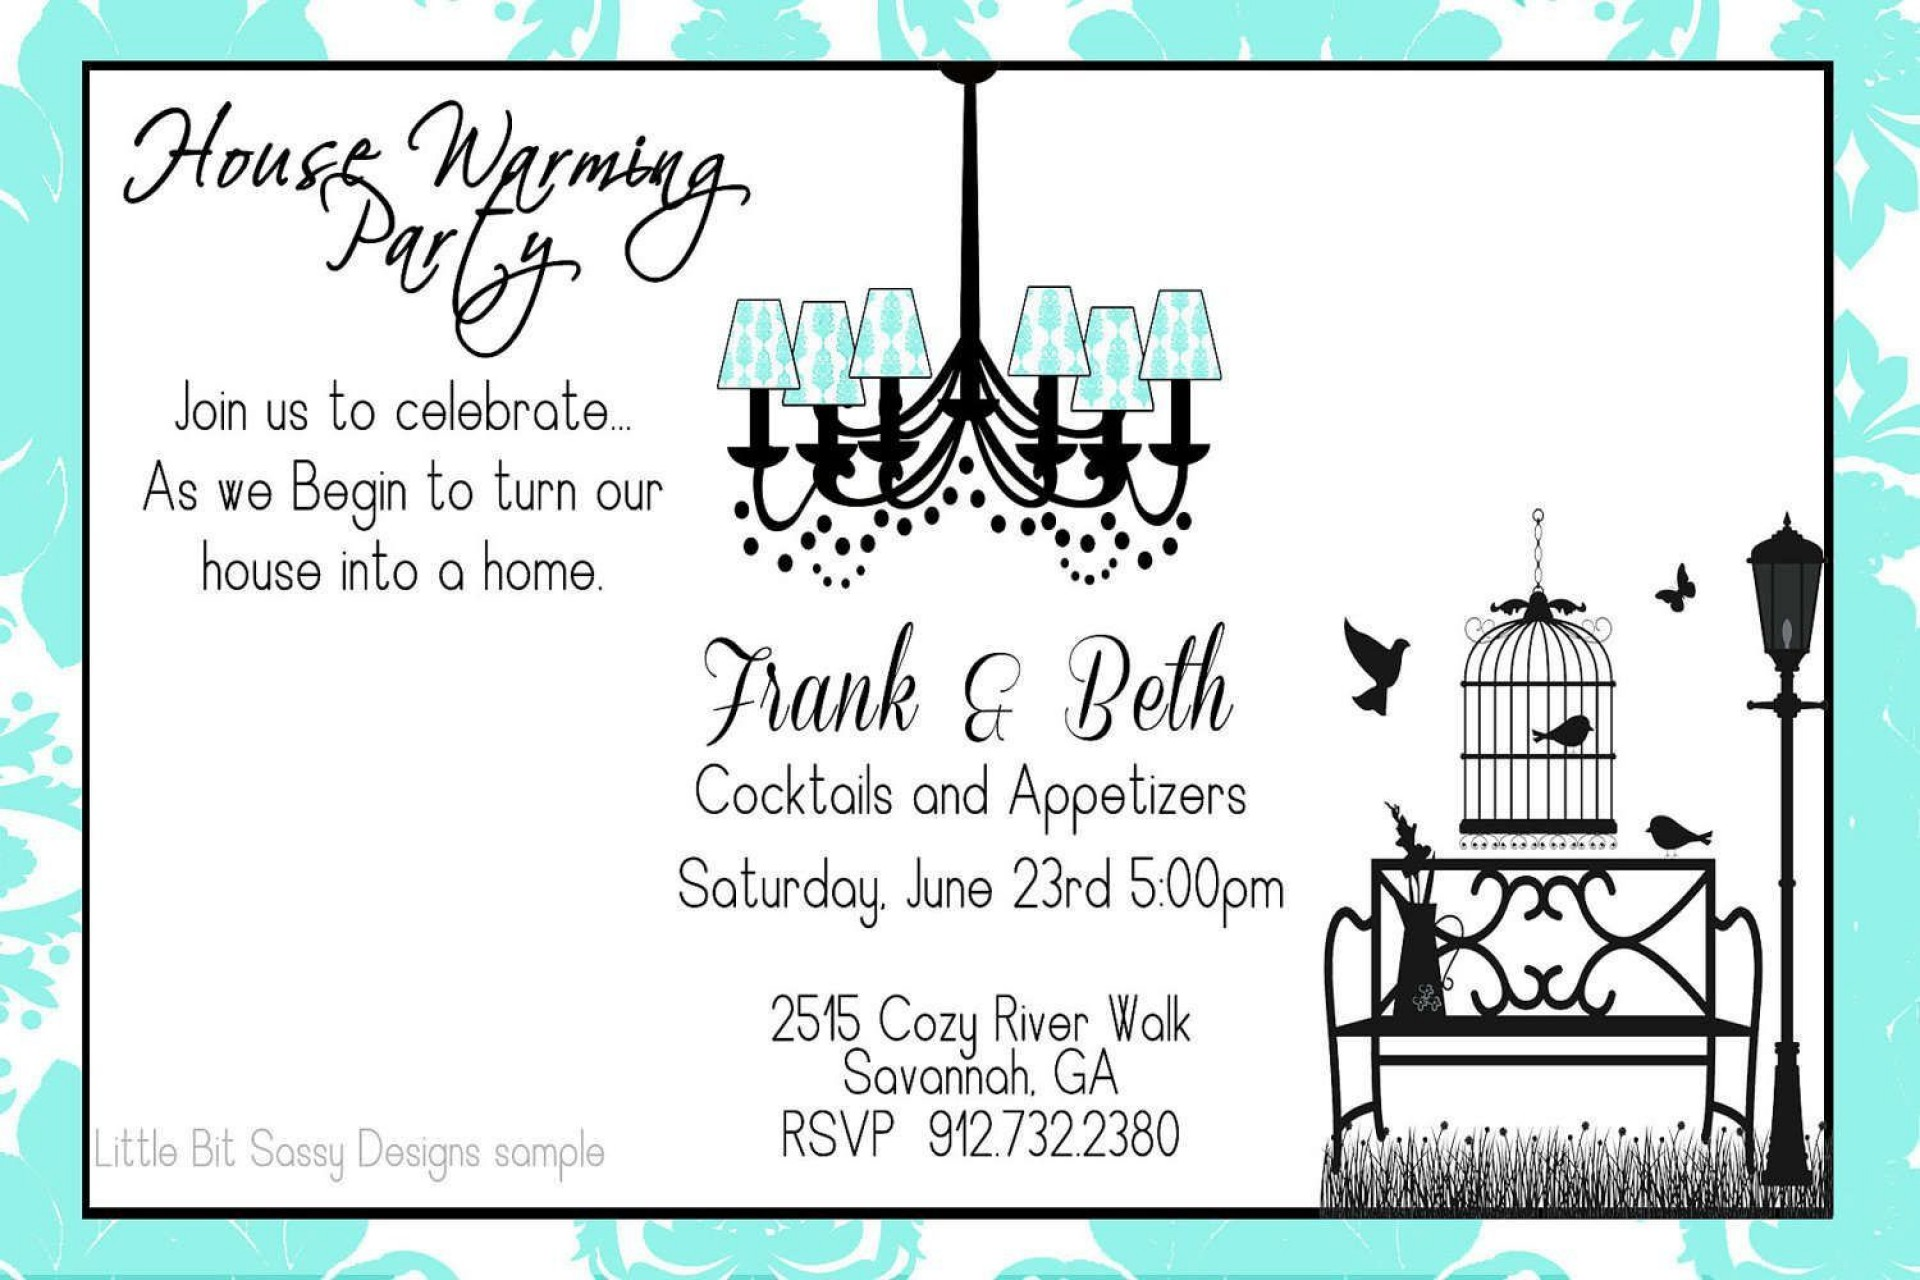 000 Incredible Free Housewarming Invitation Template High Definition  Templates Printable India Video Download1920